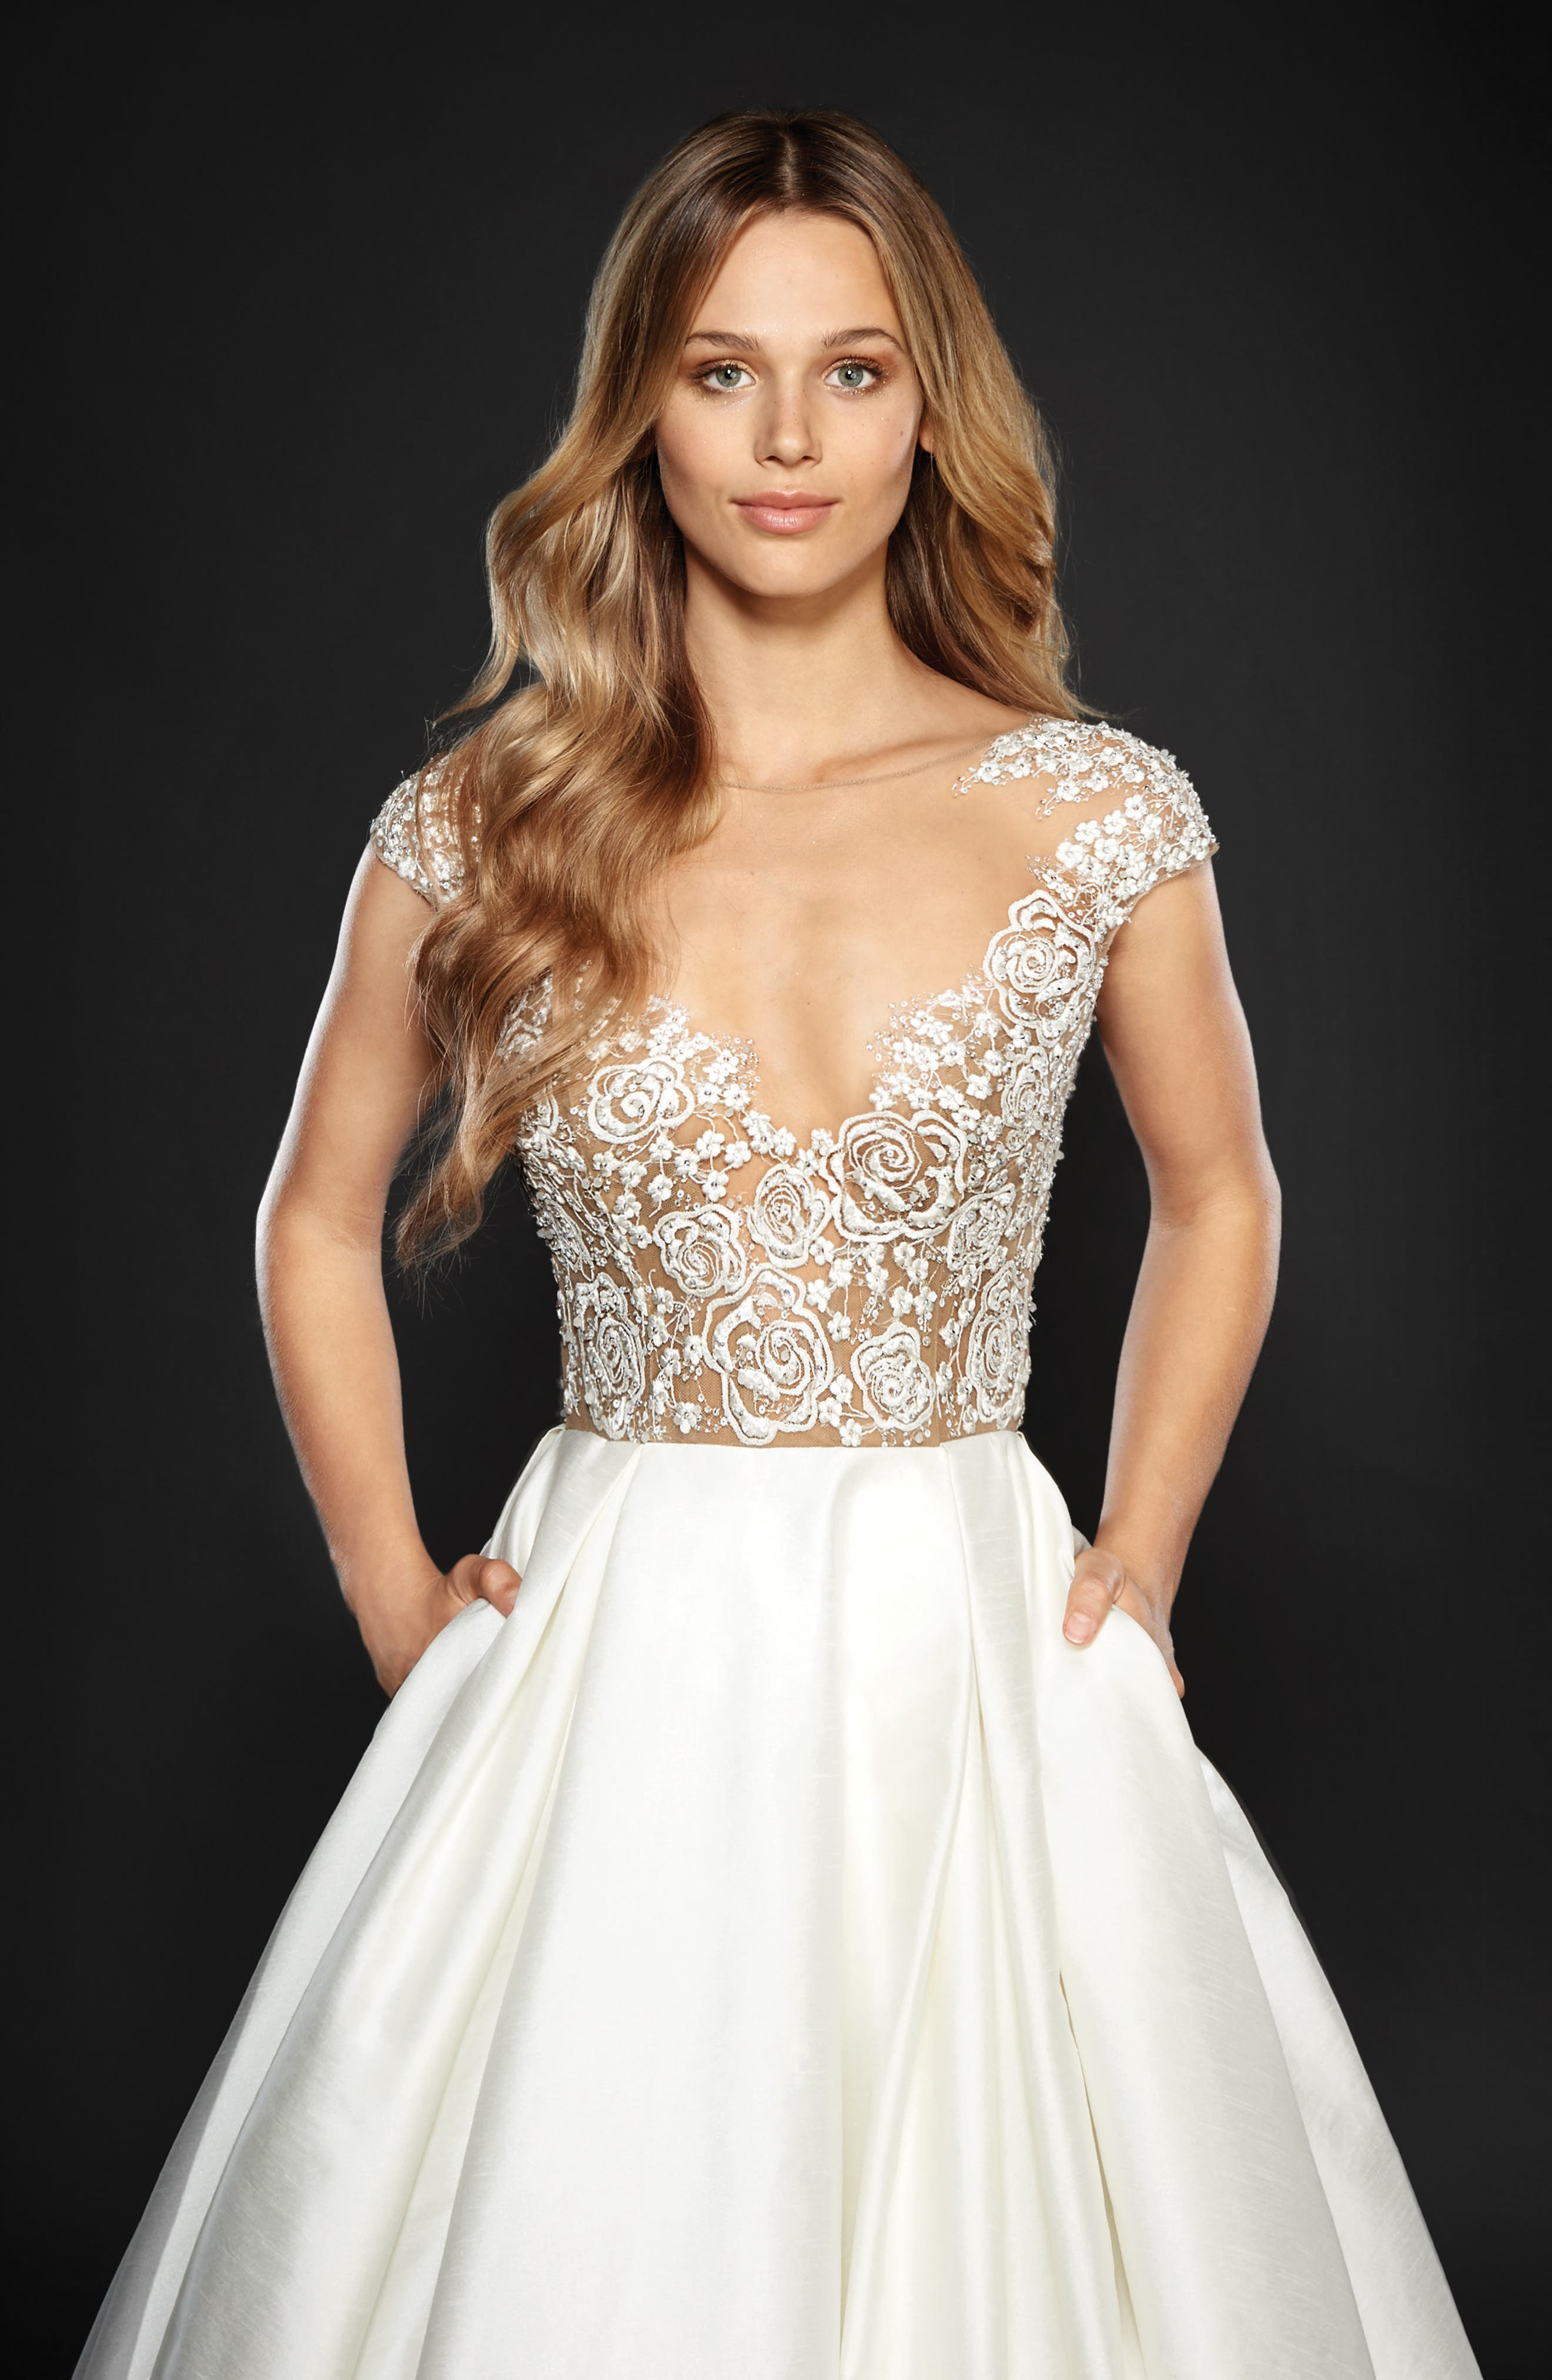 Chandler Floral Embroidered Illusion Ballgown,                             Alternate thumbnail 3, color,                             IVORY